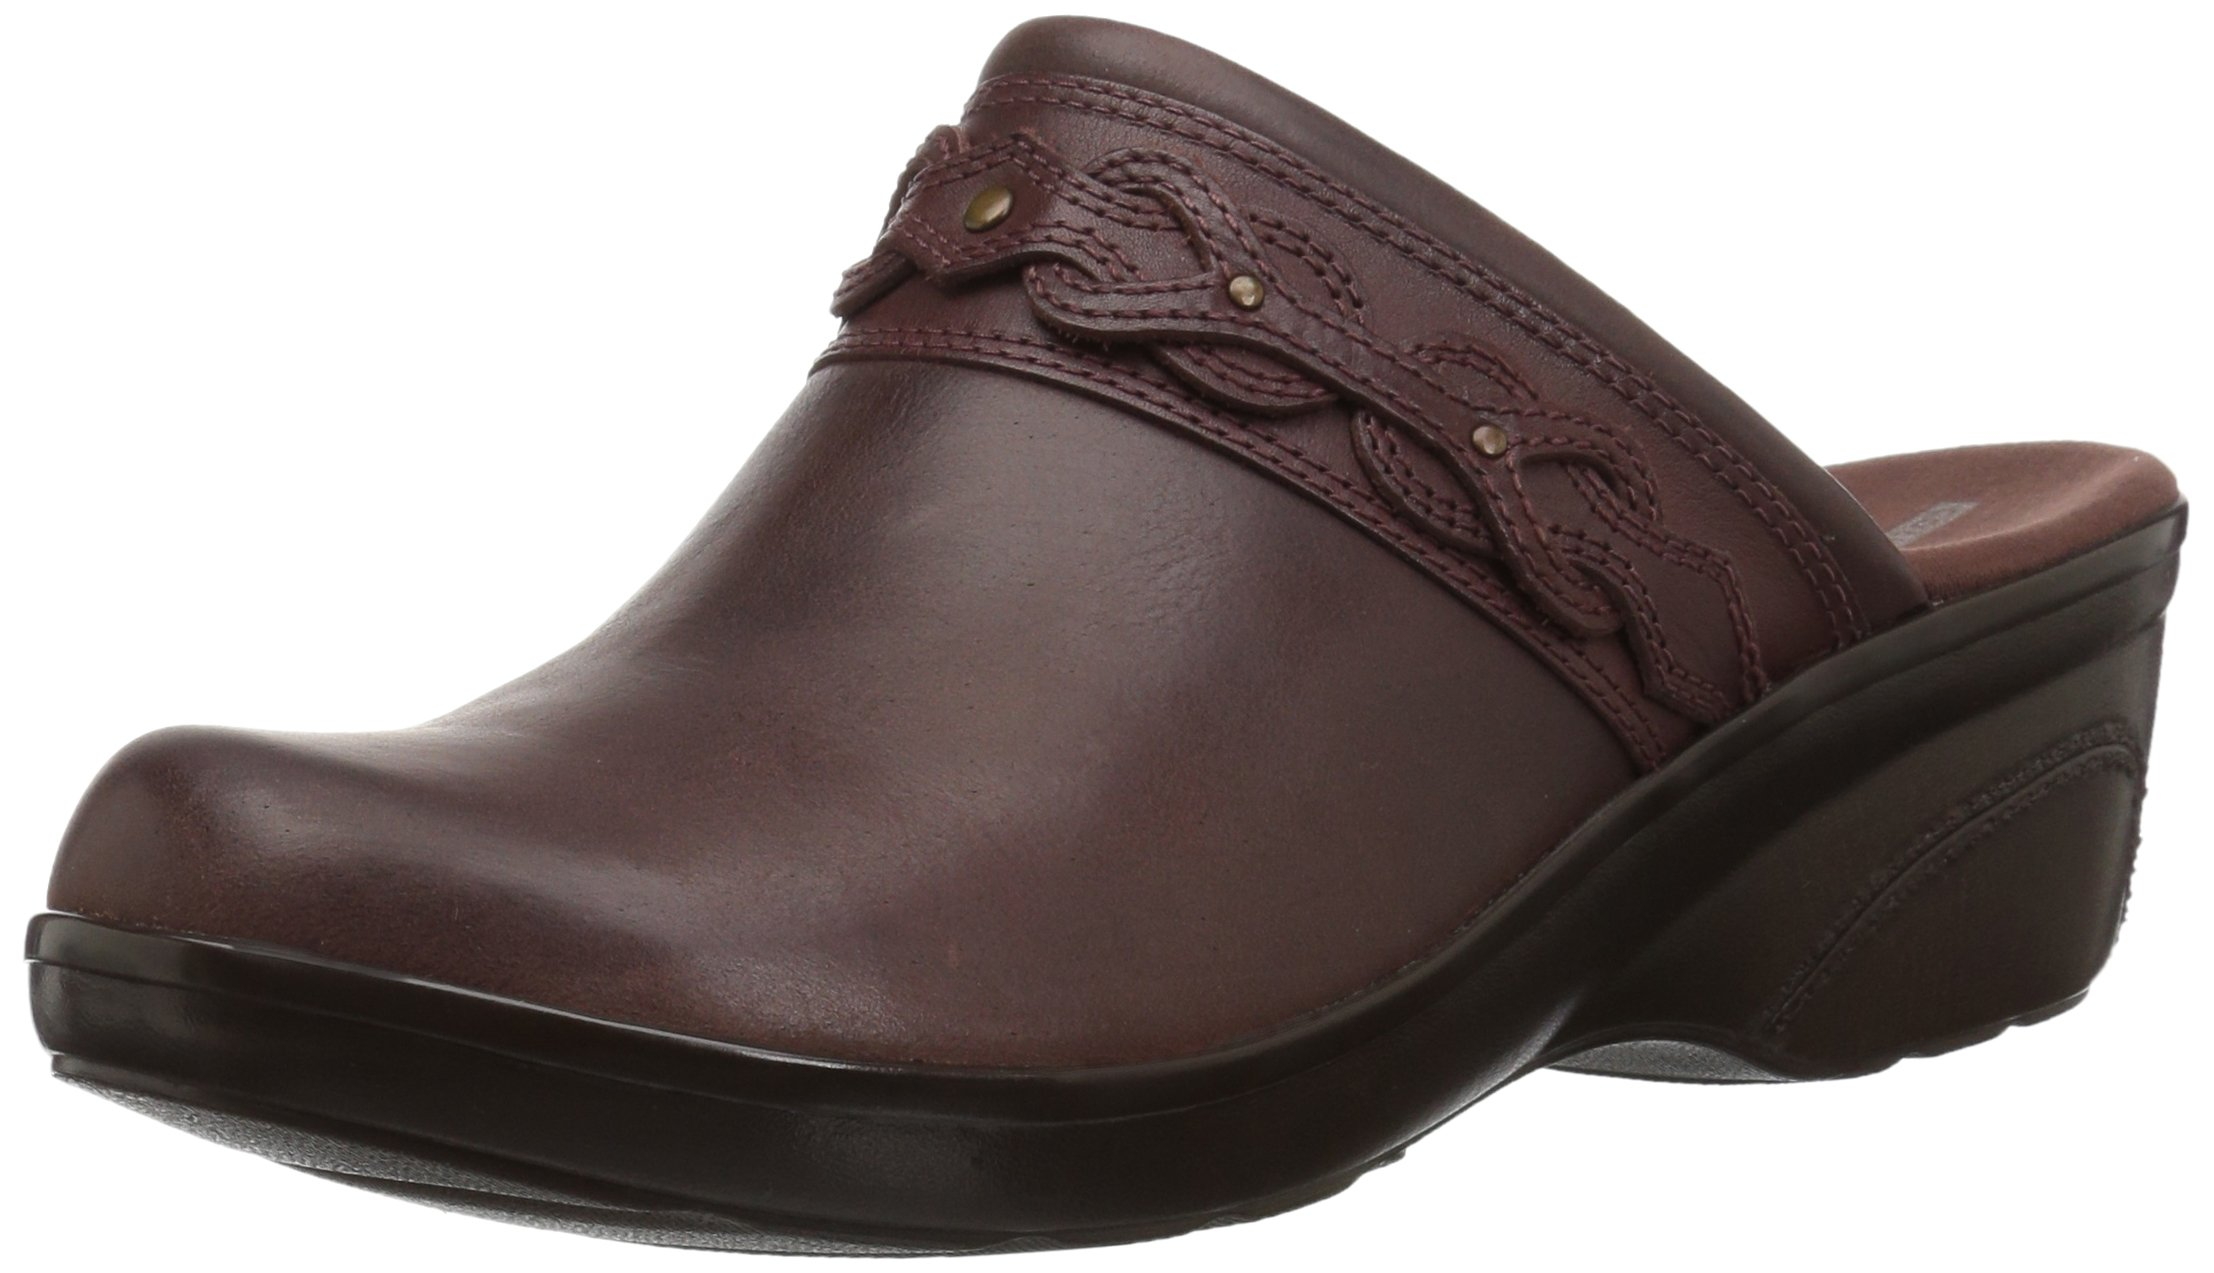 CLARKS Women's Marion Coreen Clog, Mahogany Leather, 065 W US